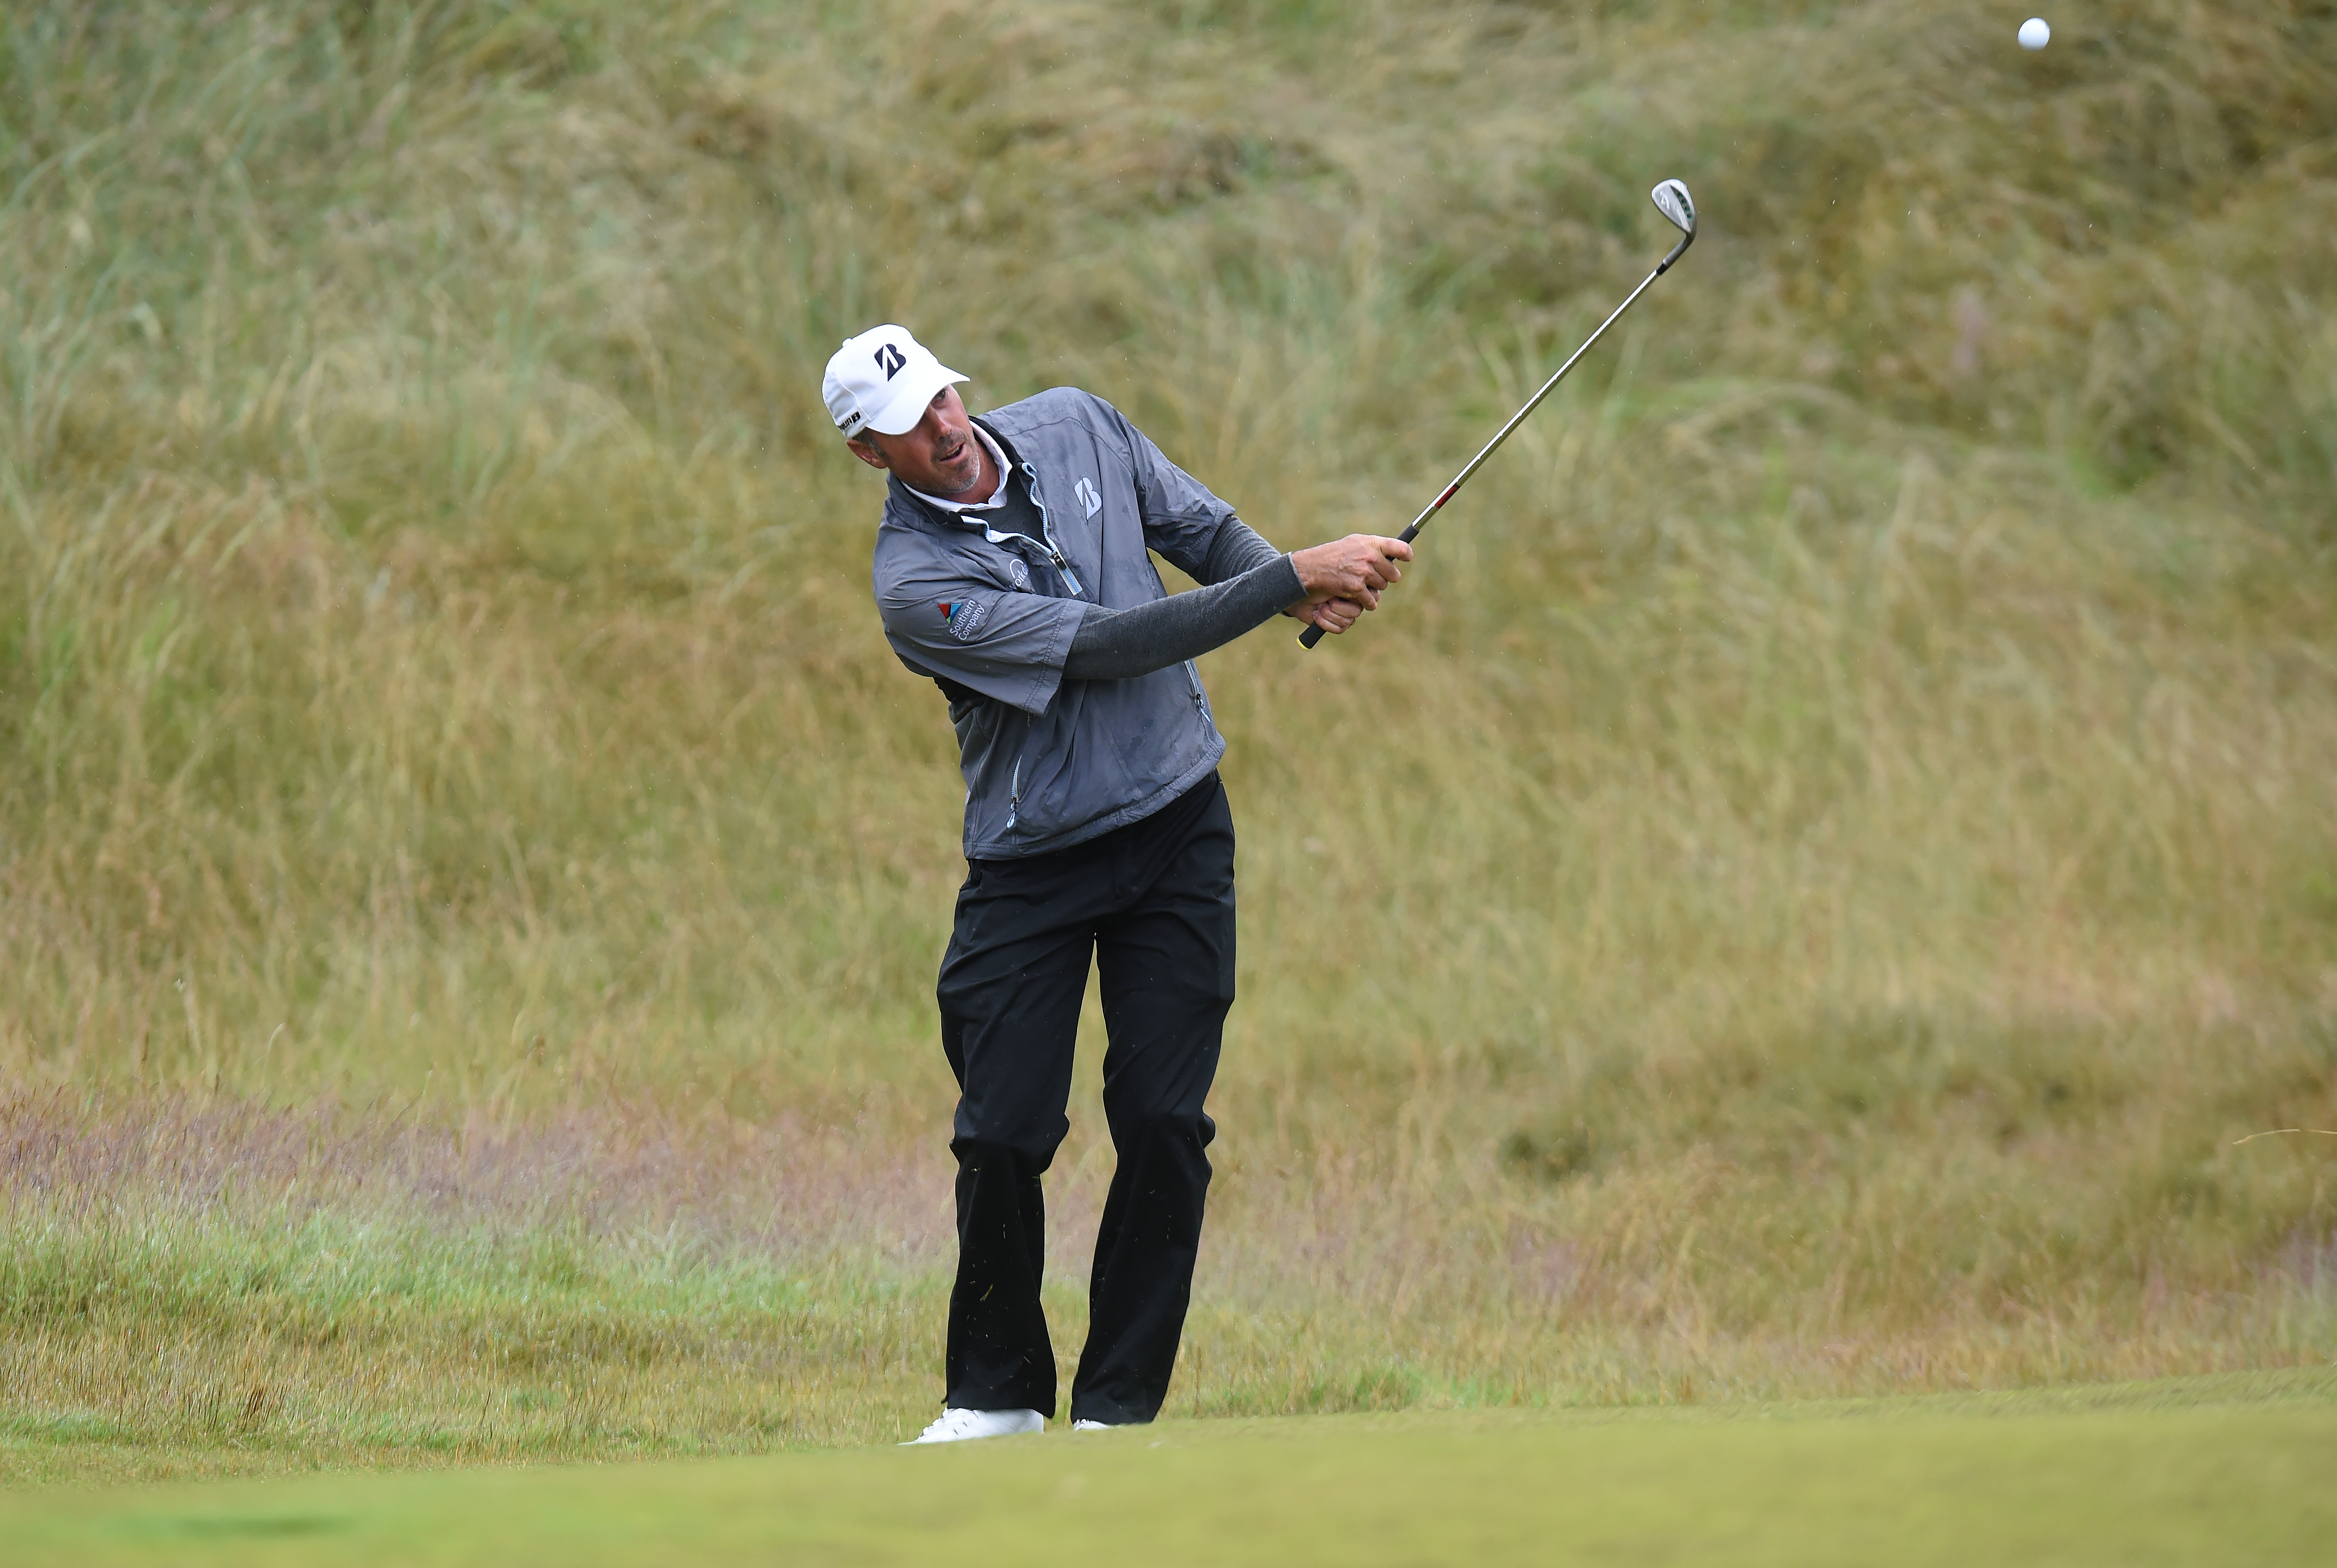 NORTH BERWICK, SCOTLAND - JULY 09: Matt Kuchar of USA playing a practice round with EDGA Pro Mike Browne of England ahead of the Aberdeen Standard Investments Scottish Open at The Renaissance Club on July 9, 2019 in North Berwick, United Kingdom. (Photo by Mark Runnacles/Getty Images)